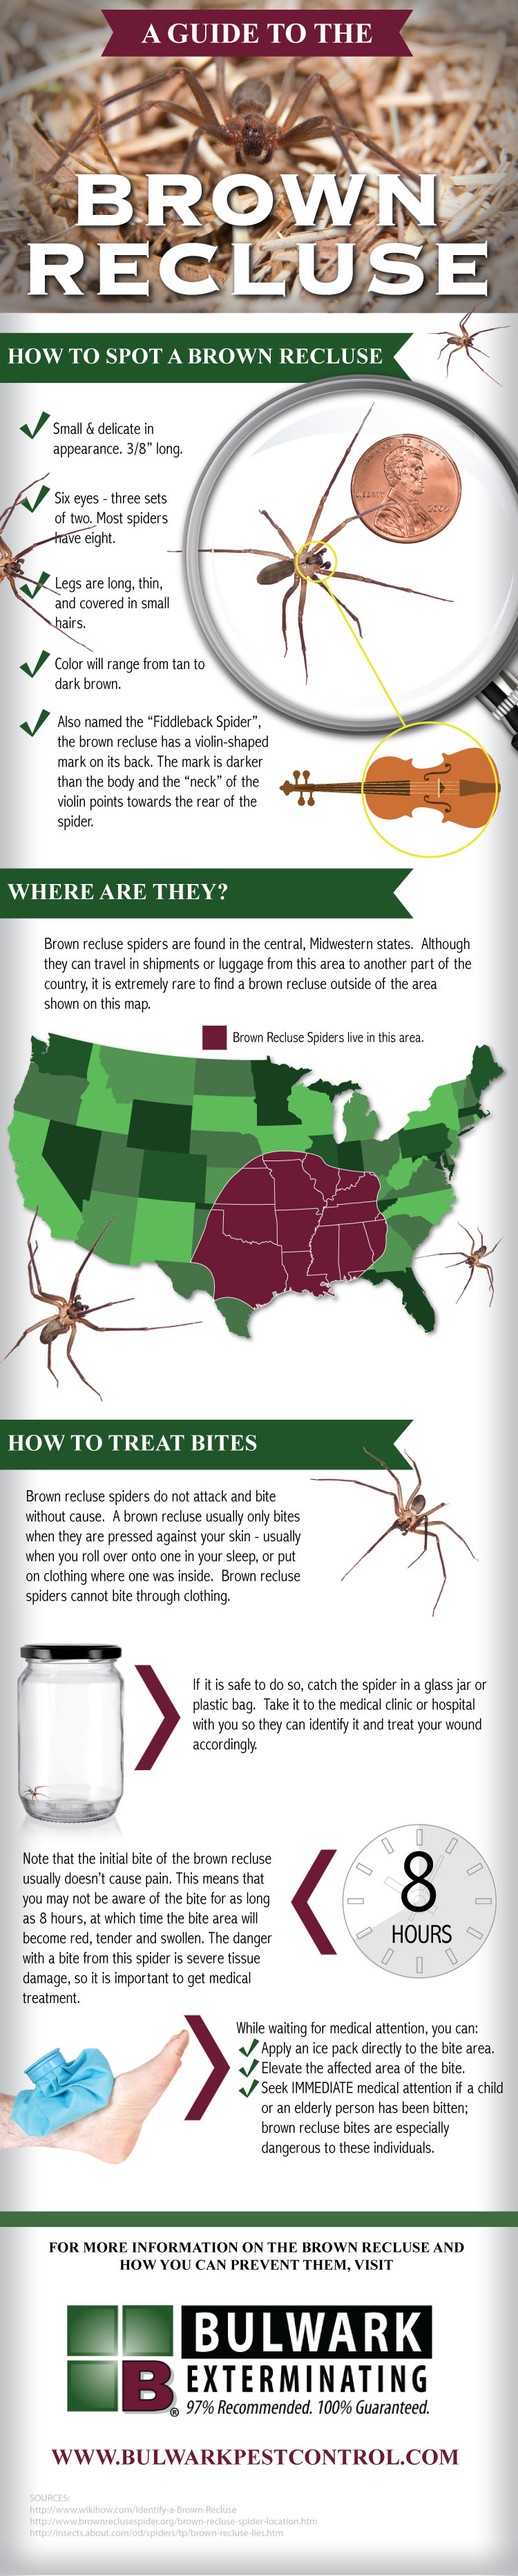 Infographic Brown Recluse Guide Bulwark Exterminating Brown Recluse Spider Brown Recluse Recluse Spider